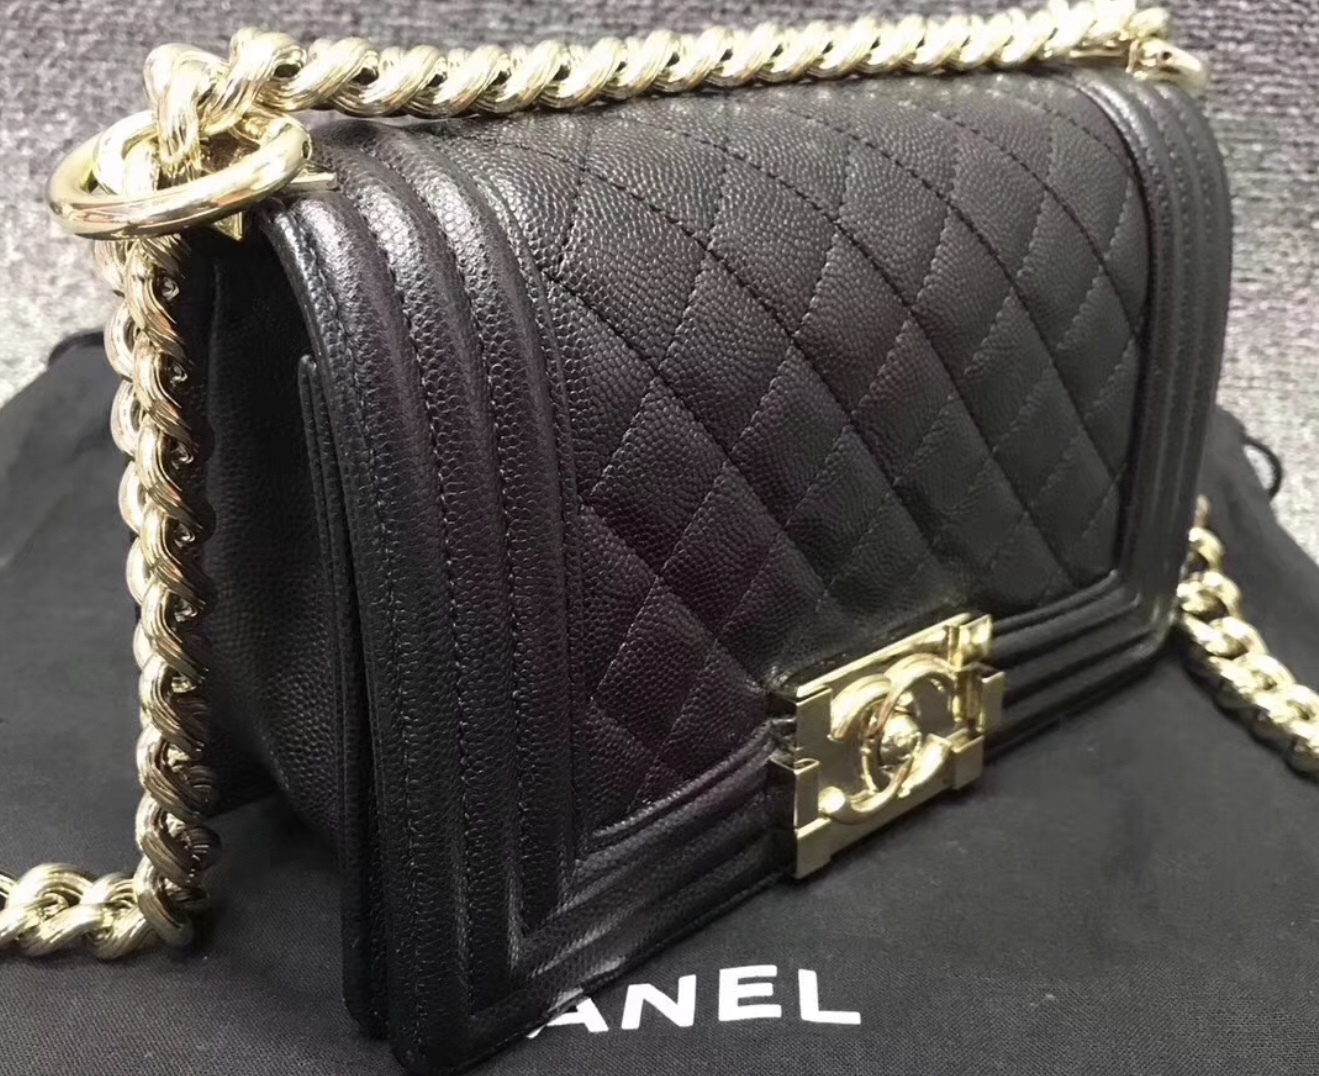 NEW 100% AUTHENTIC CHANEL 2017 BLACK QUILTED CAVIAR SMALL BOY FLAP BAG GHW